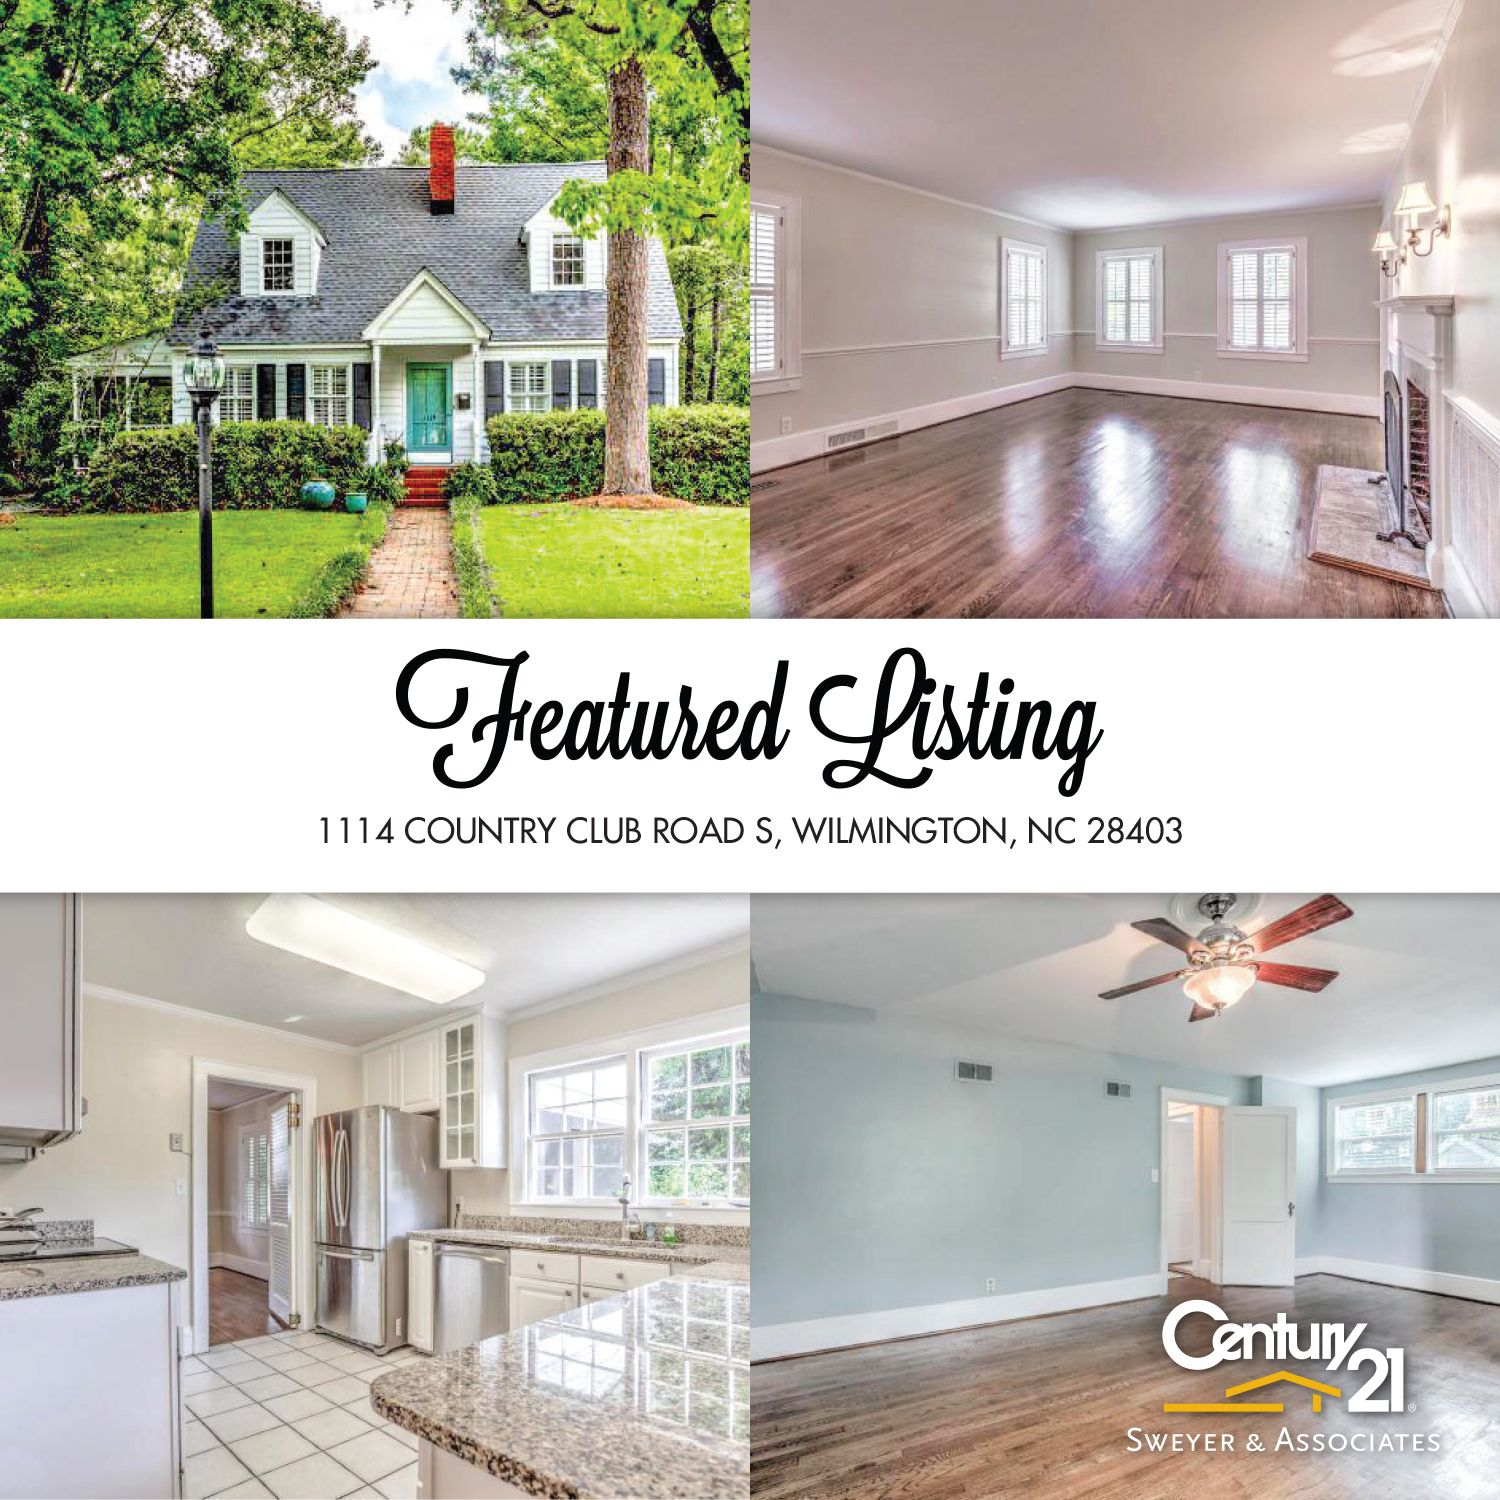 1537 Forest Hills Road Jacksonville Florida 32208 4: Century 21 Sweyer & Associates Presents 1114 Country Club